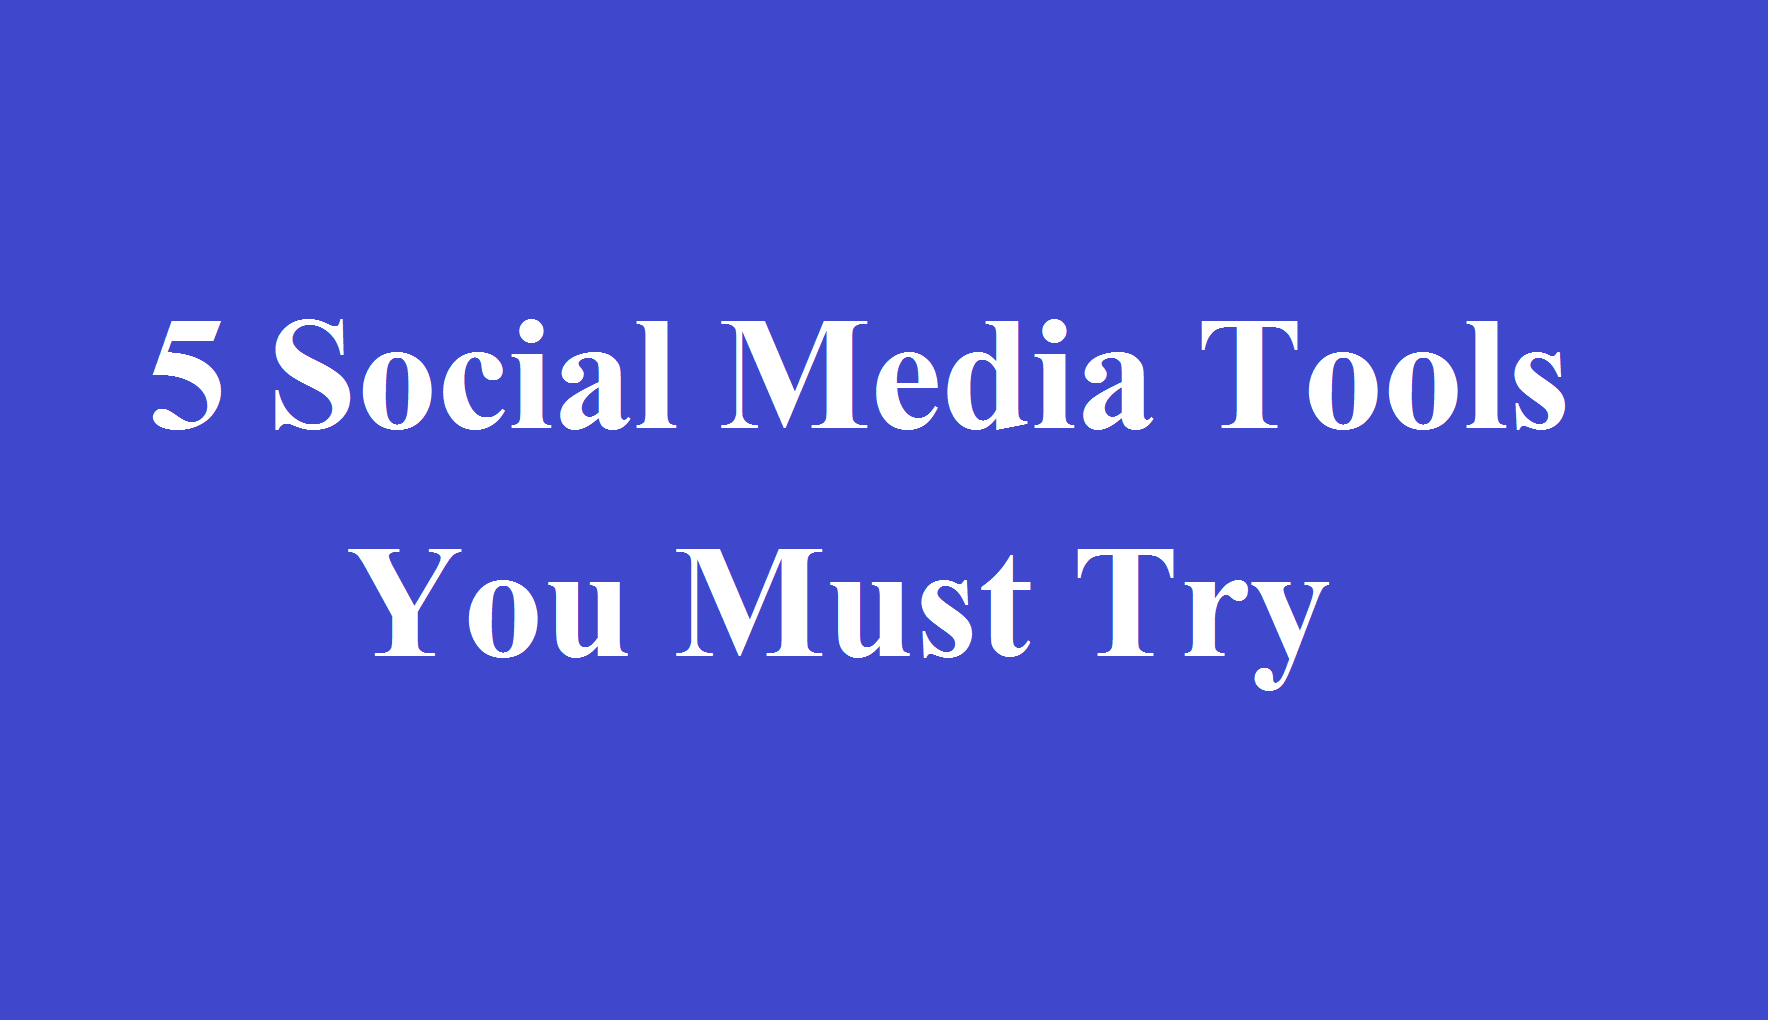 5 Social Media Tools You Must Try